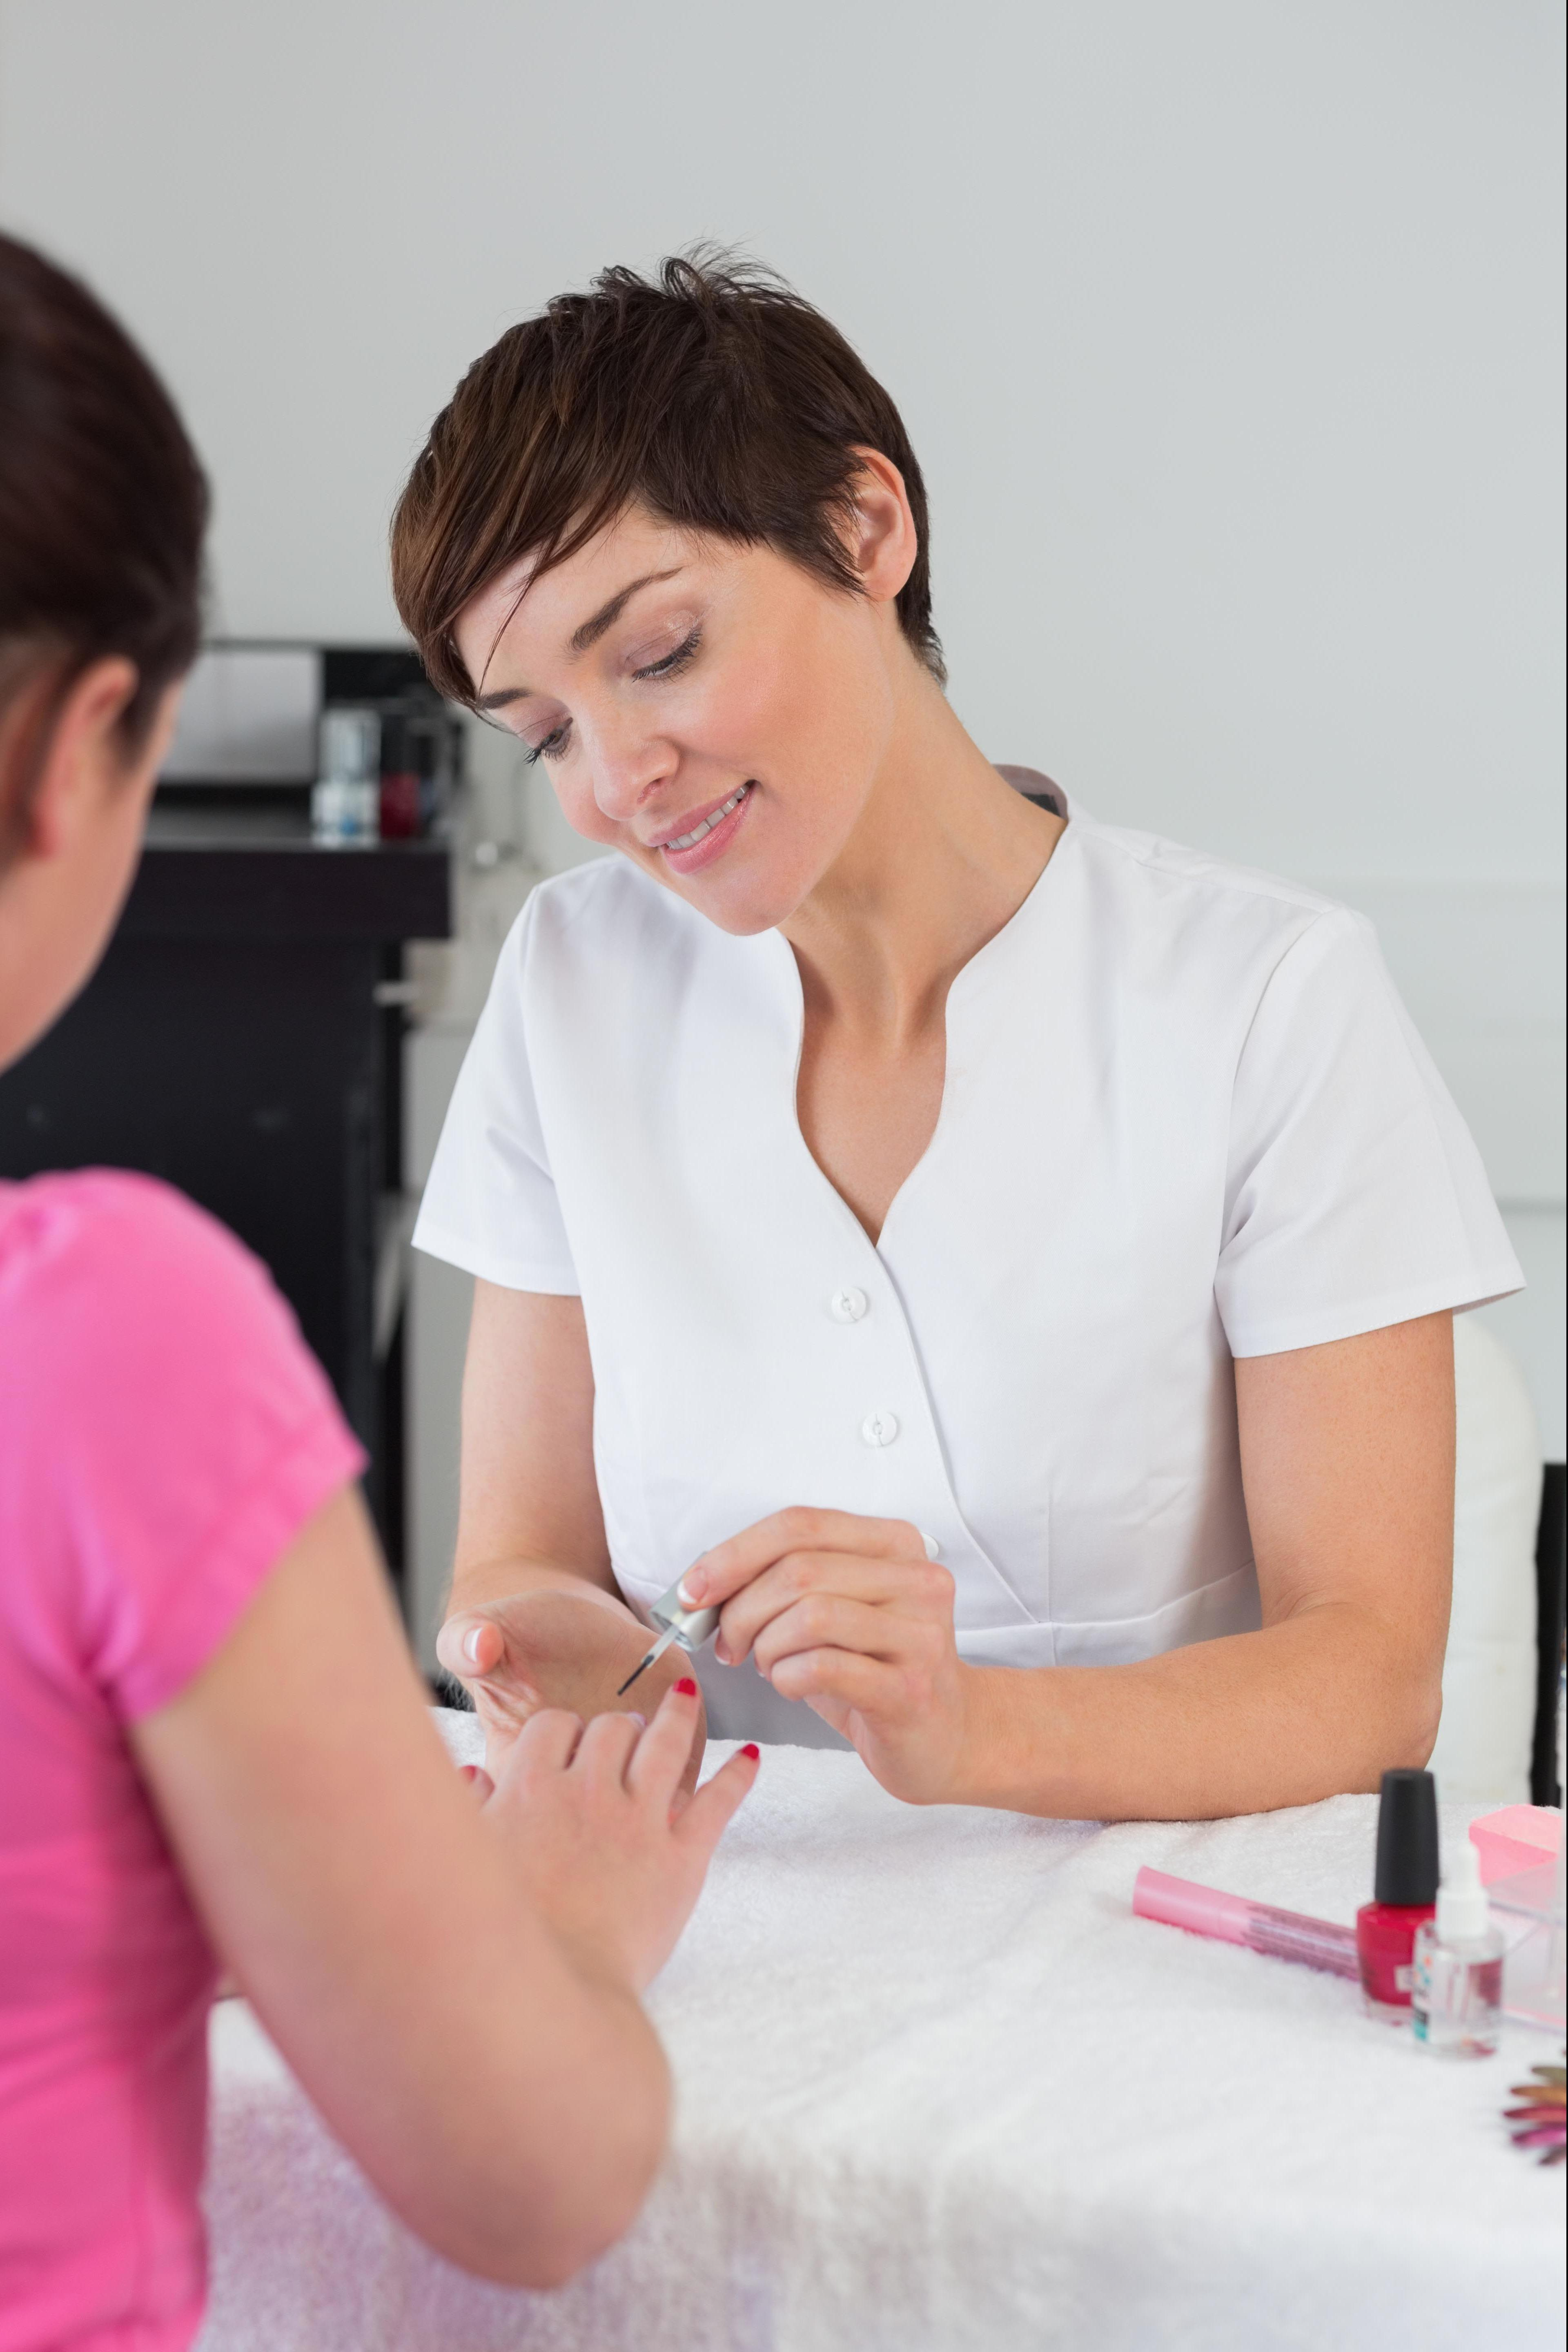 Salon serenity spa in wake forest nc 27587 for A q nail salon wake forest nc